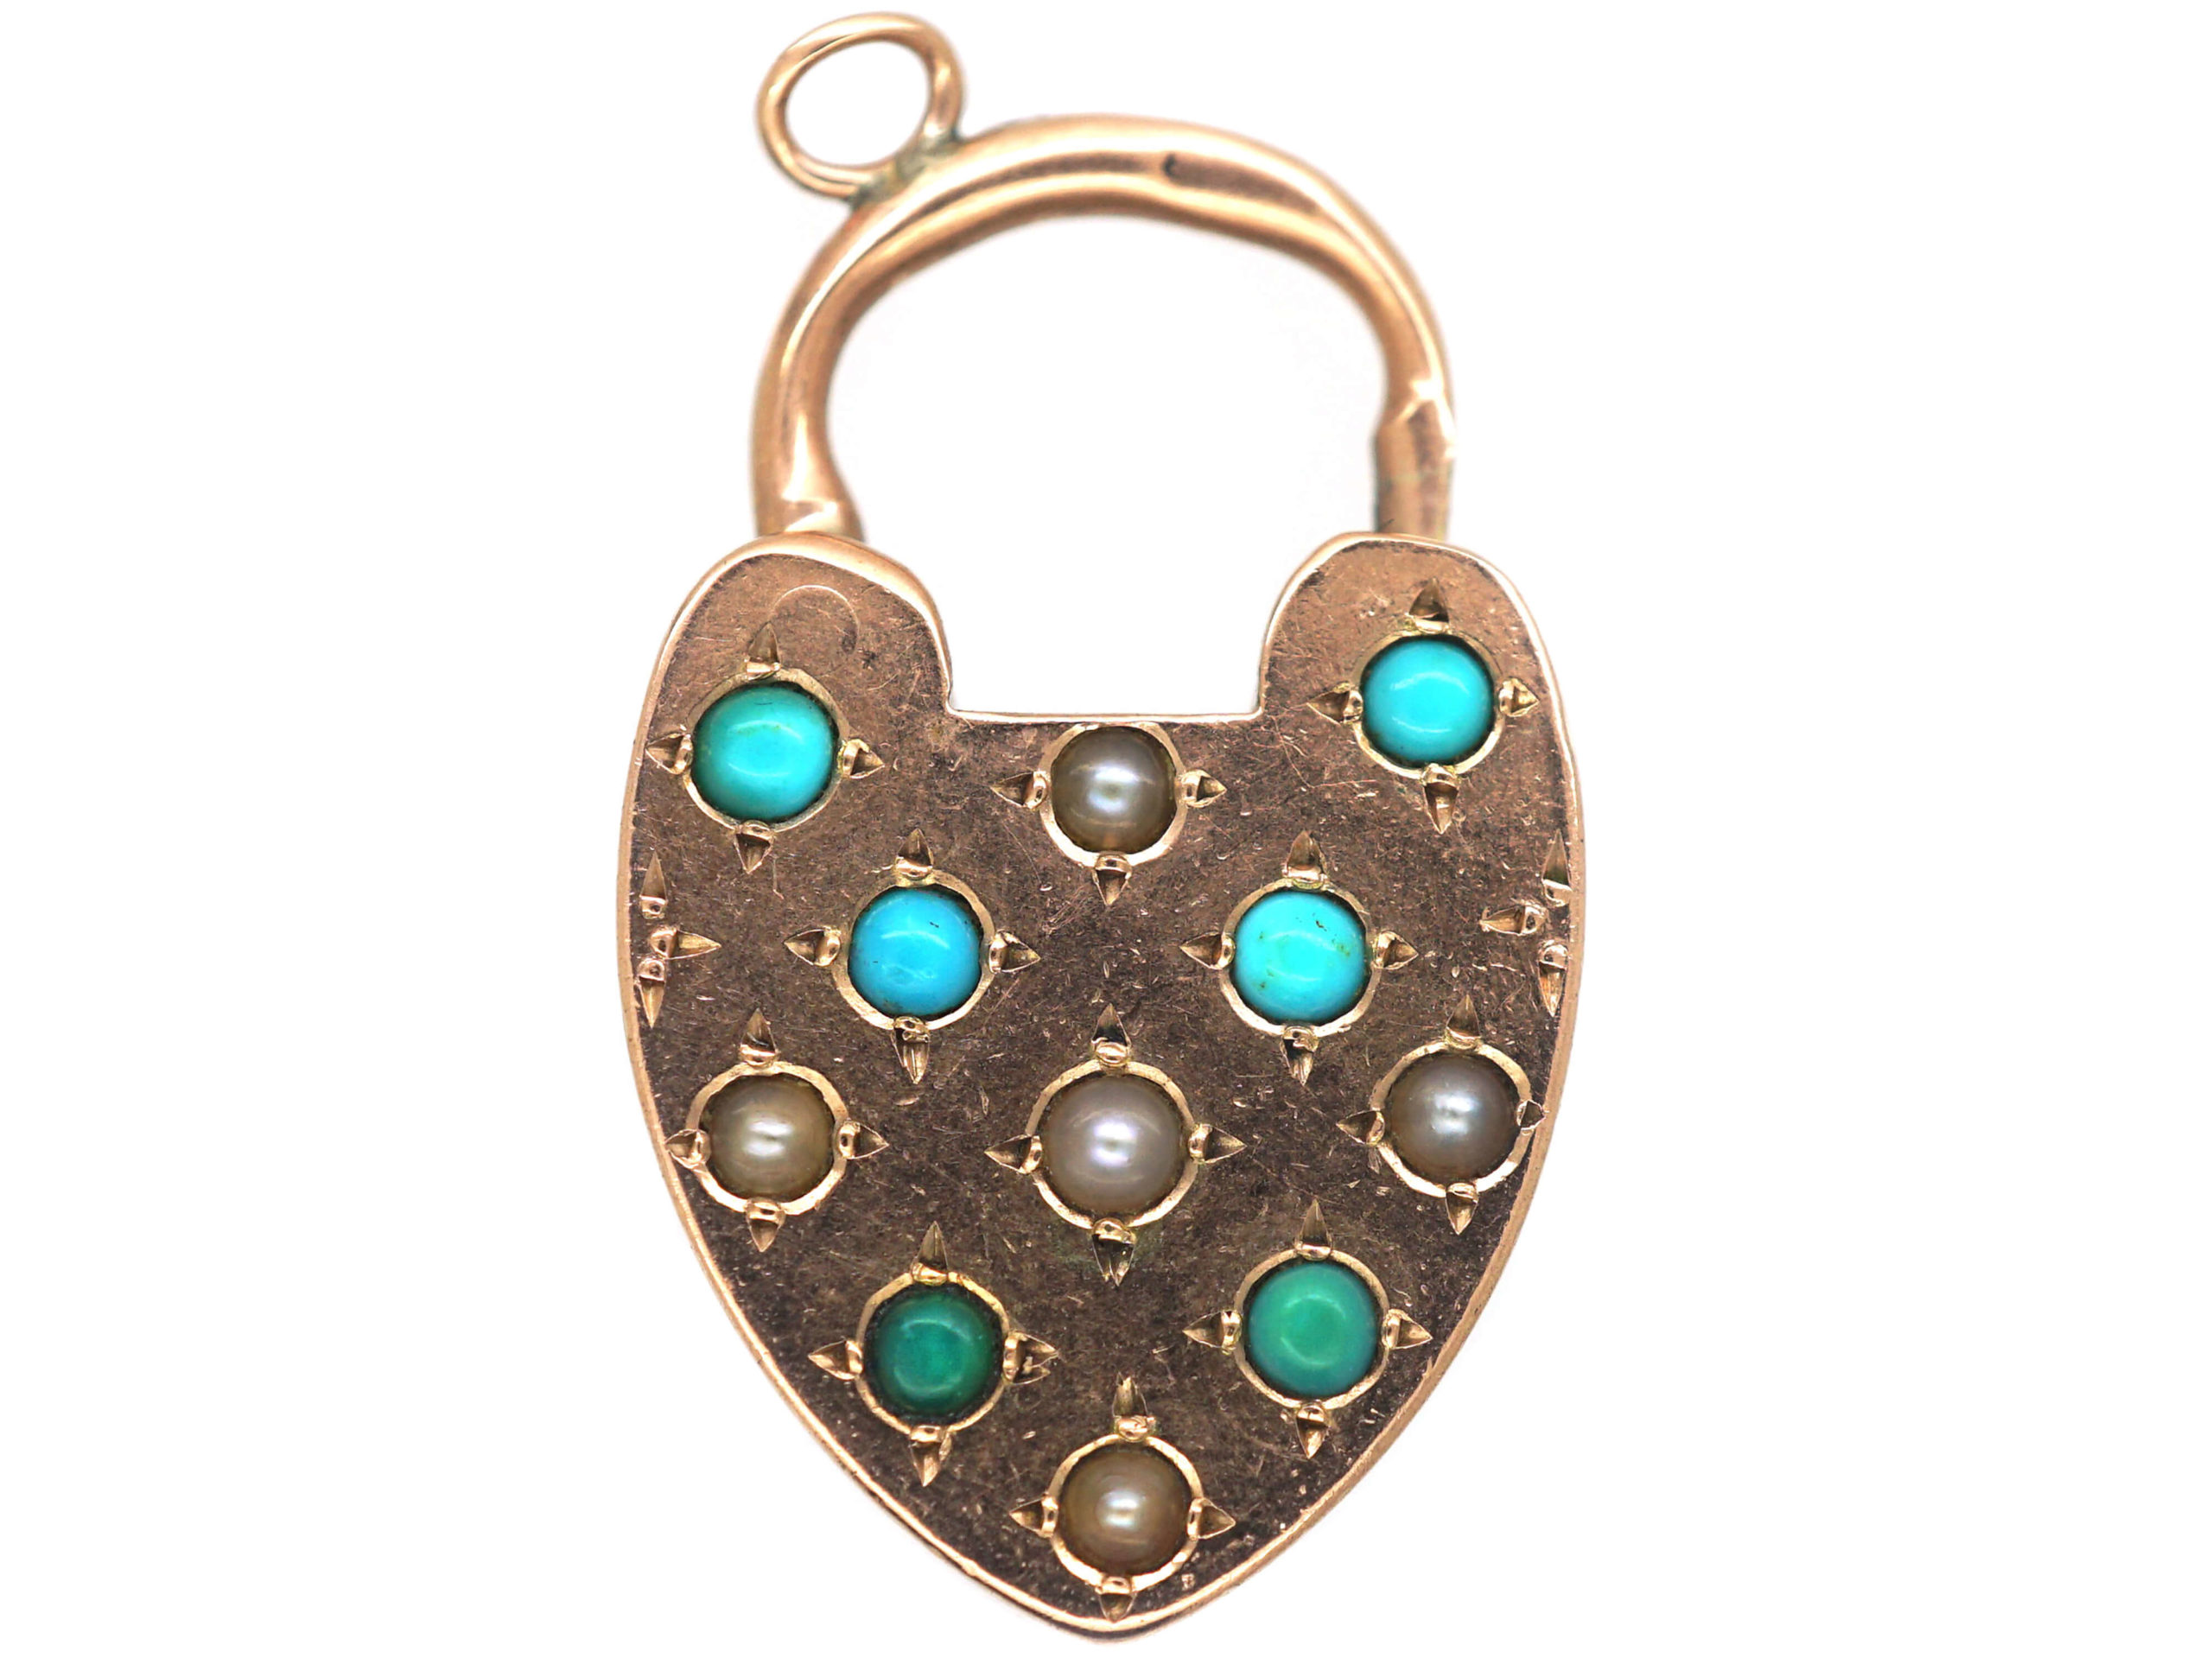 Victorian 9ct Gold Padlock set with Turquoise & Natural Split Pearls